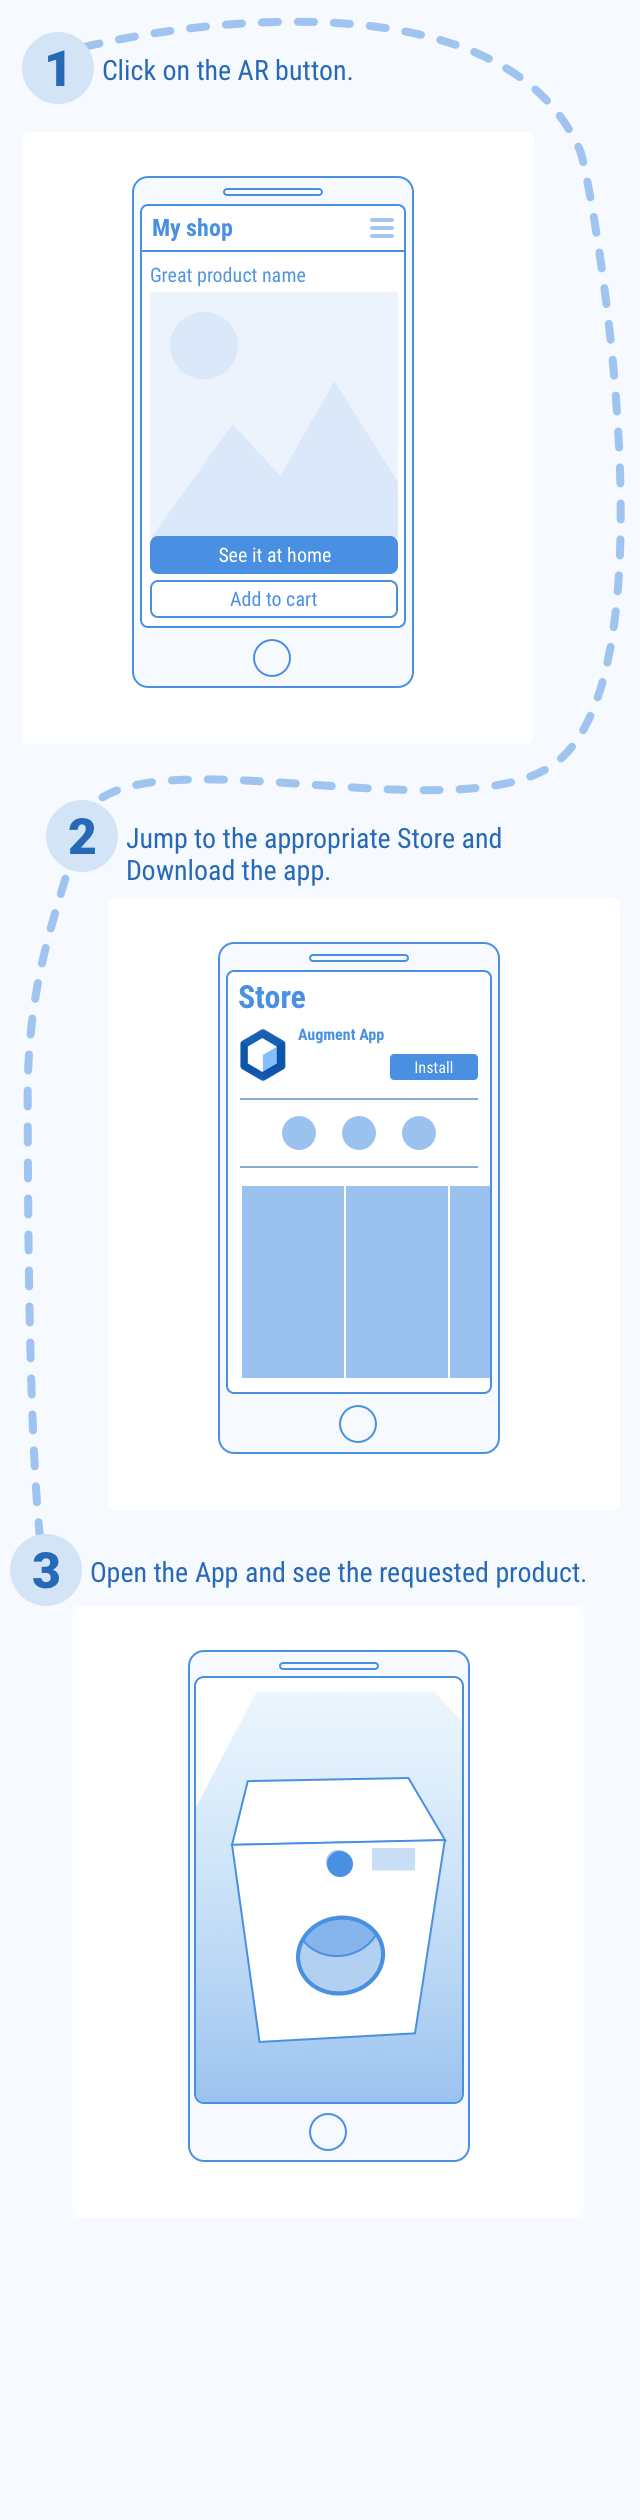 the user flow from a mobile website to downloading the Augment app then the product view in augmented reality